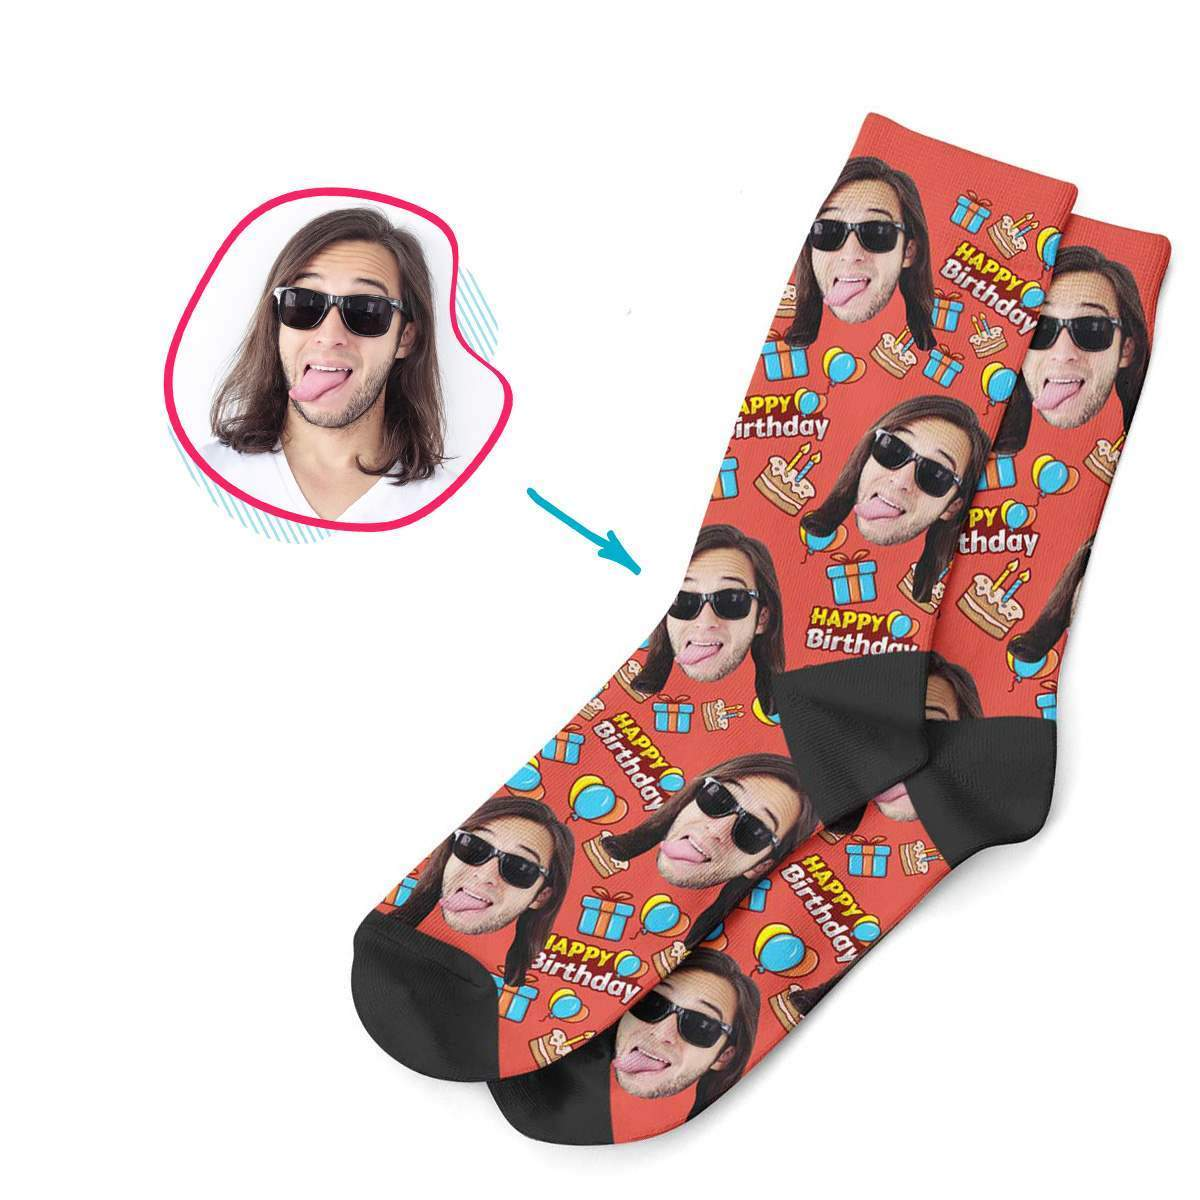 red Birthday socks personalized with photo of face printed on them